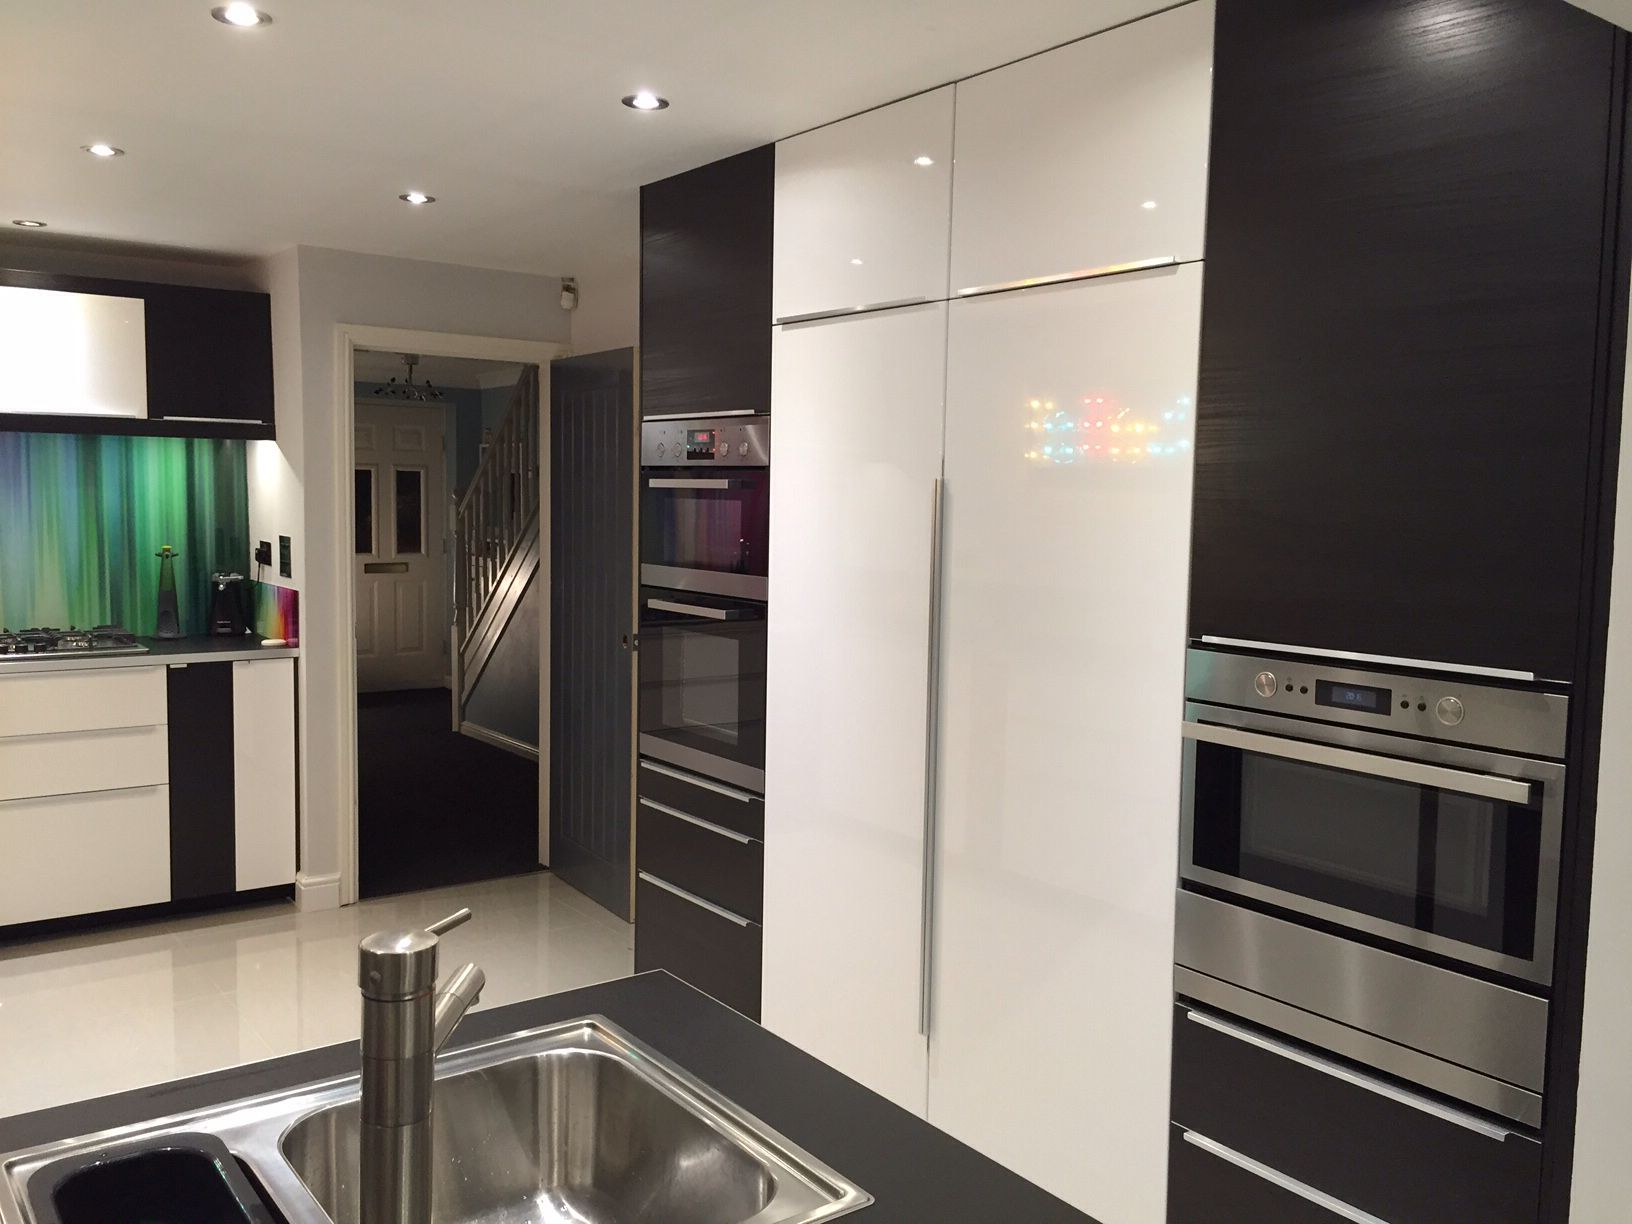 Ikea Ringhult High Gloss White And Tingsryd Black Kitchen With Appliance Wall Incorporating Full